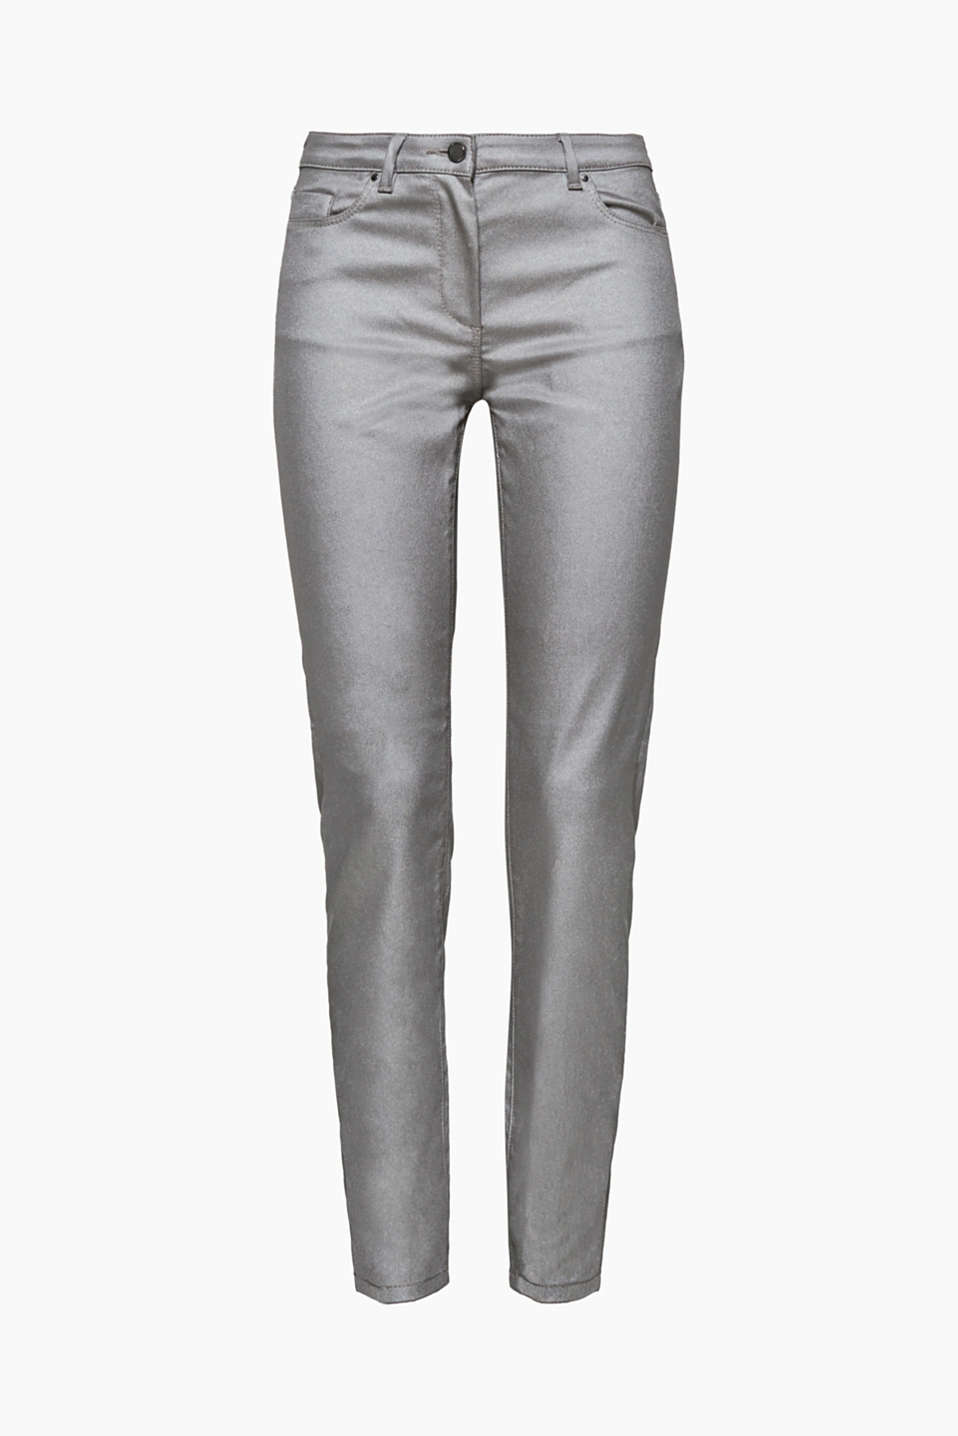 Hot: these fashion trousers in a five-pocket style stand out thanks to their skin-tight cut and silver-coloured coating!